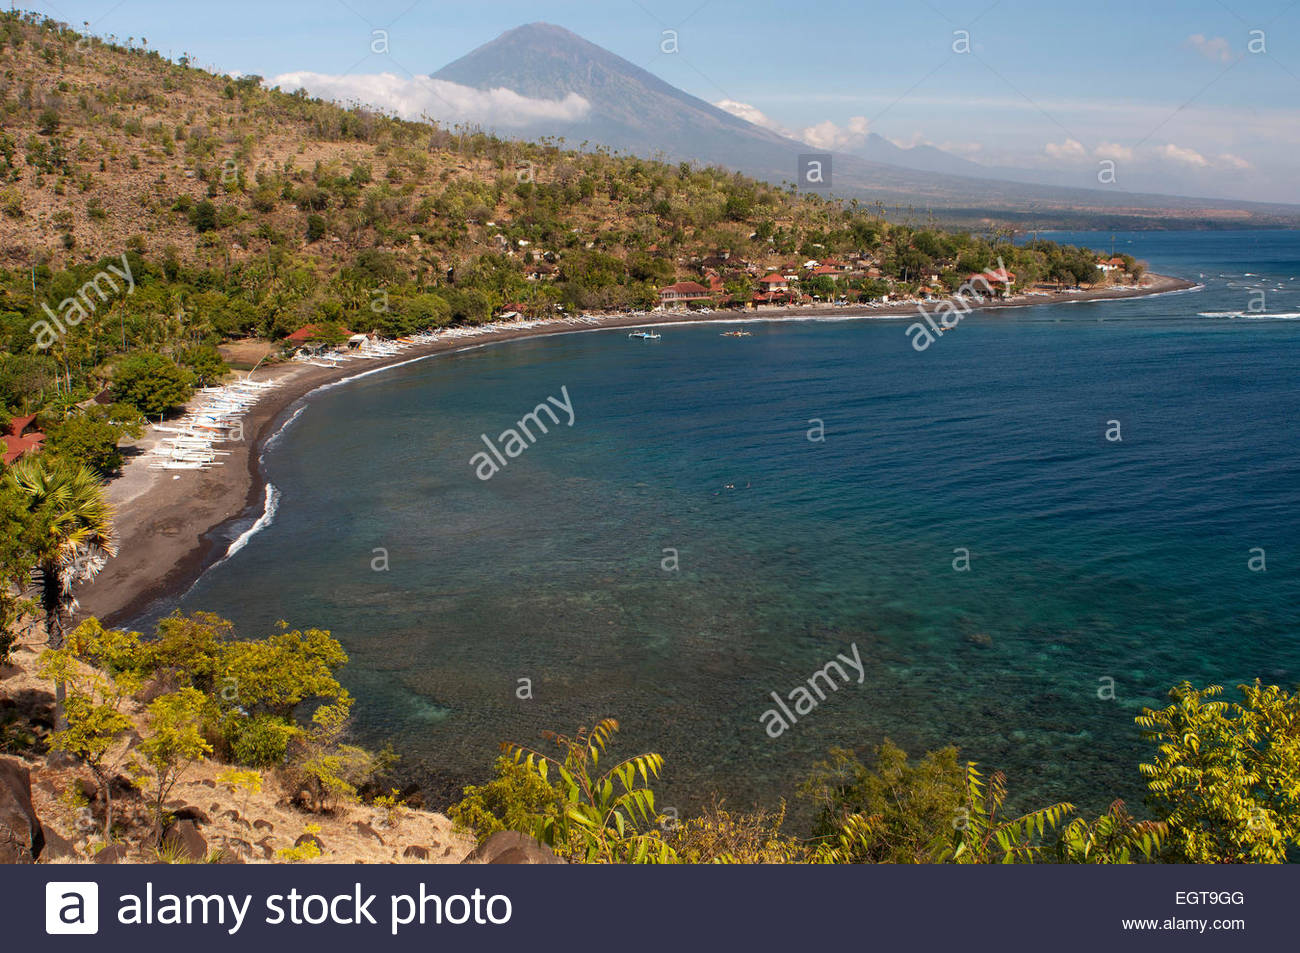 The small village of Amed fisherman with views of Mount Gunung Agung background (3142m). East Bali. Amed is a long - Stock Image